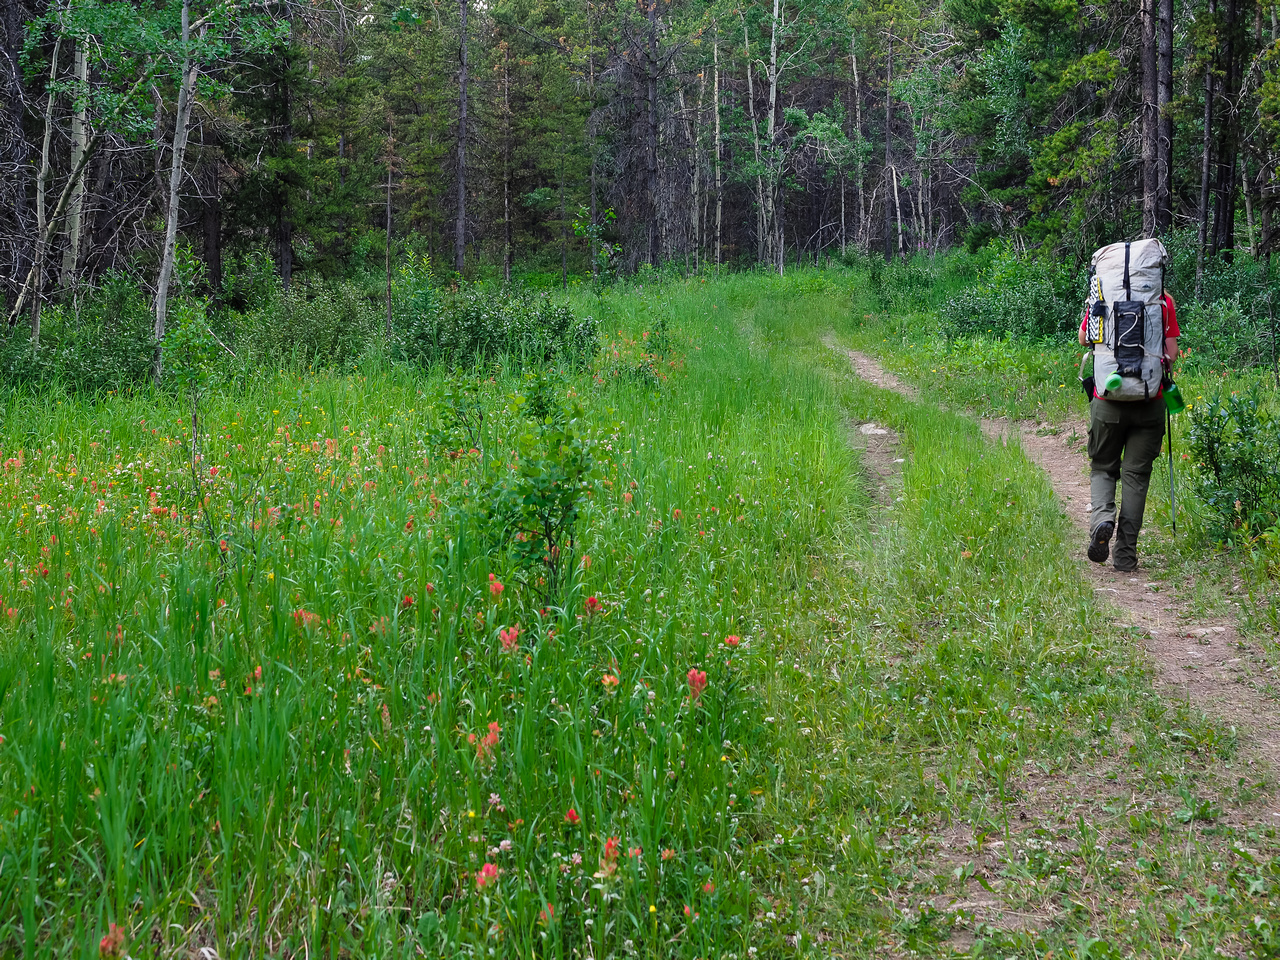 A plethora of wildflowers along the dry, wide trail.